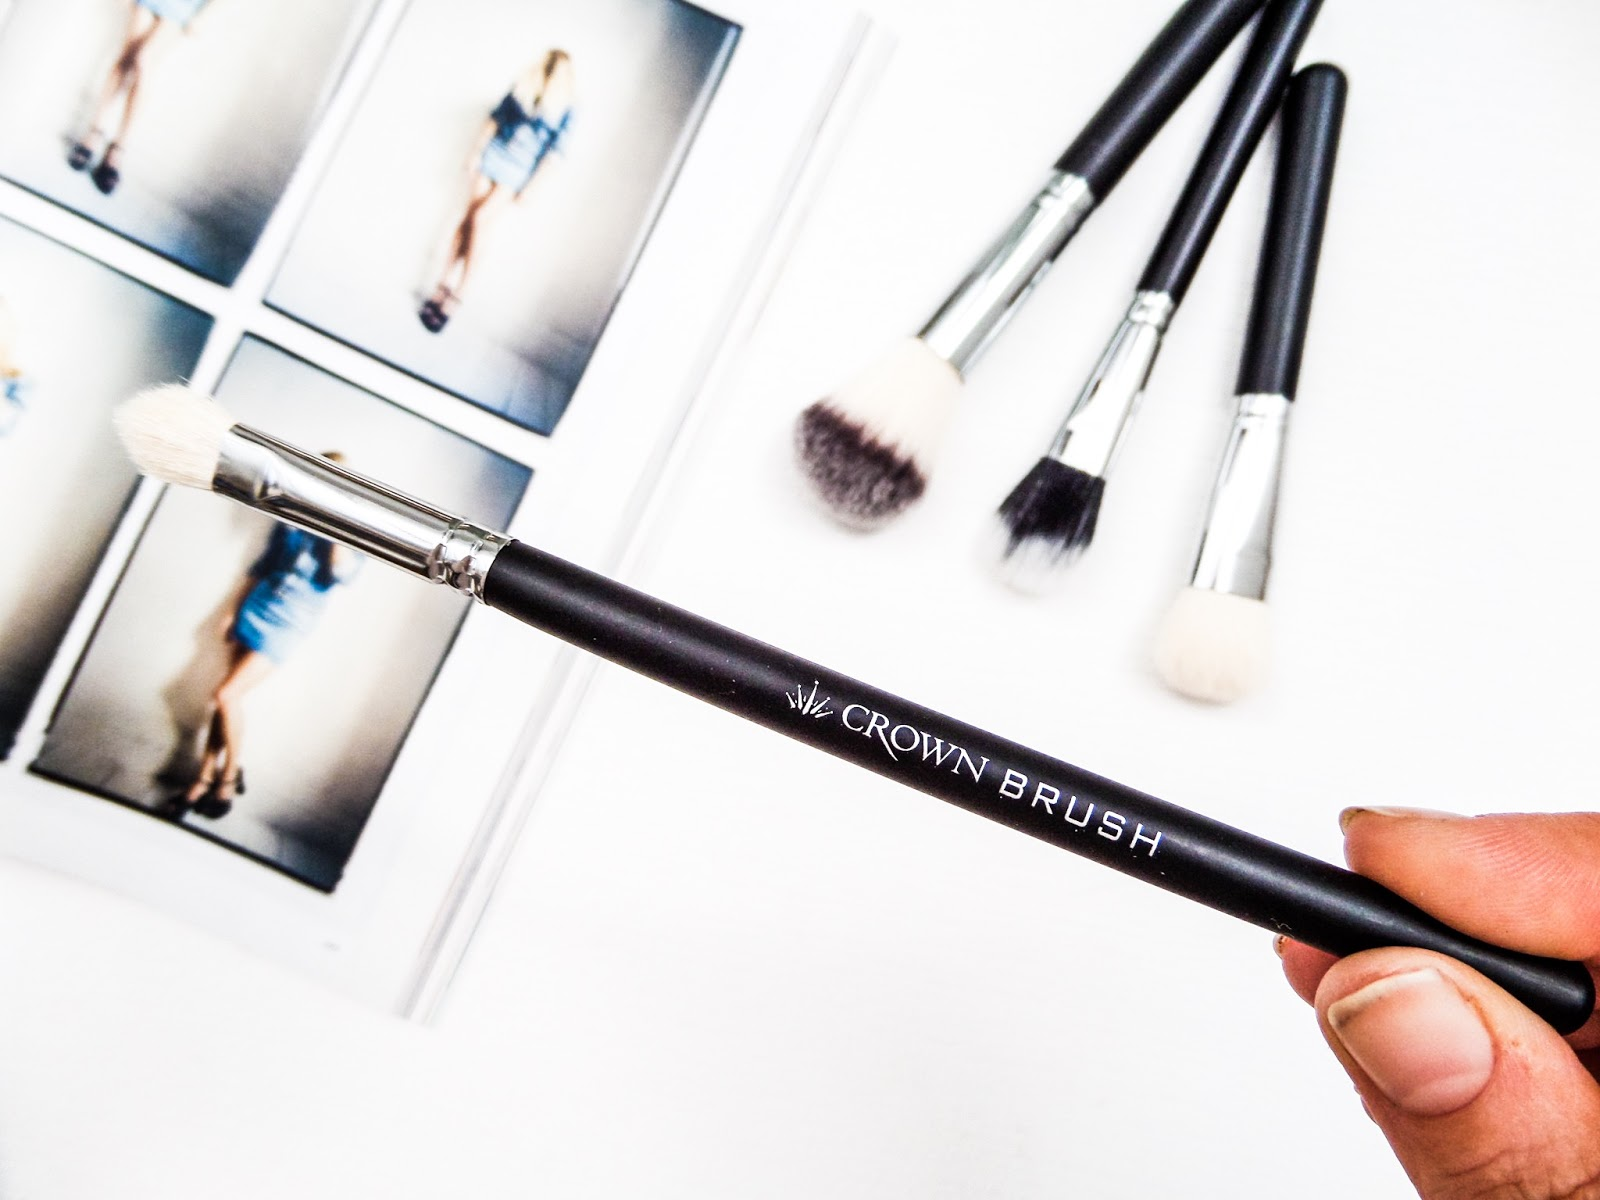 The Crownbrush Haul and review